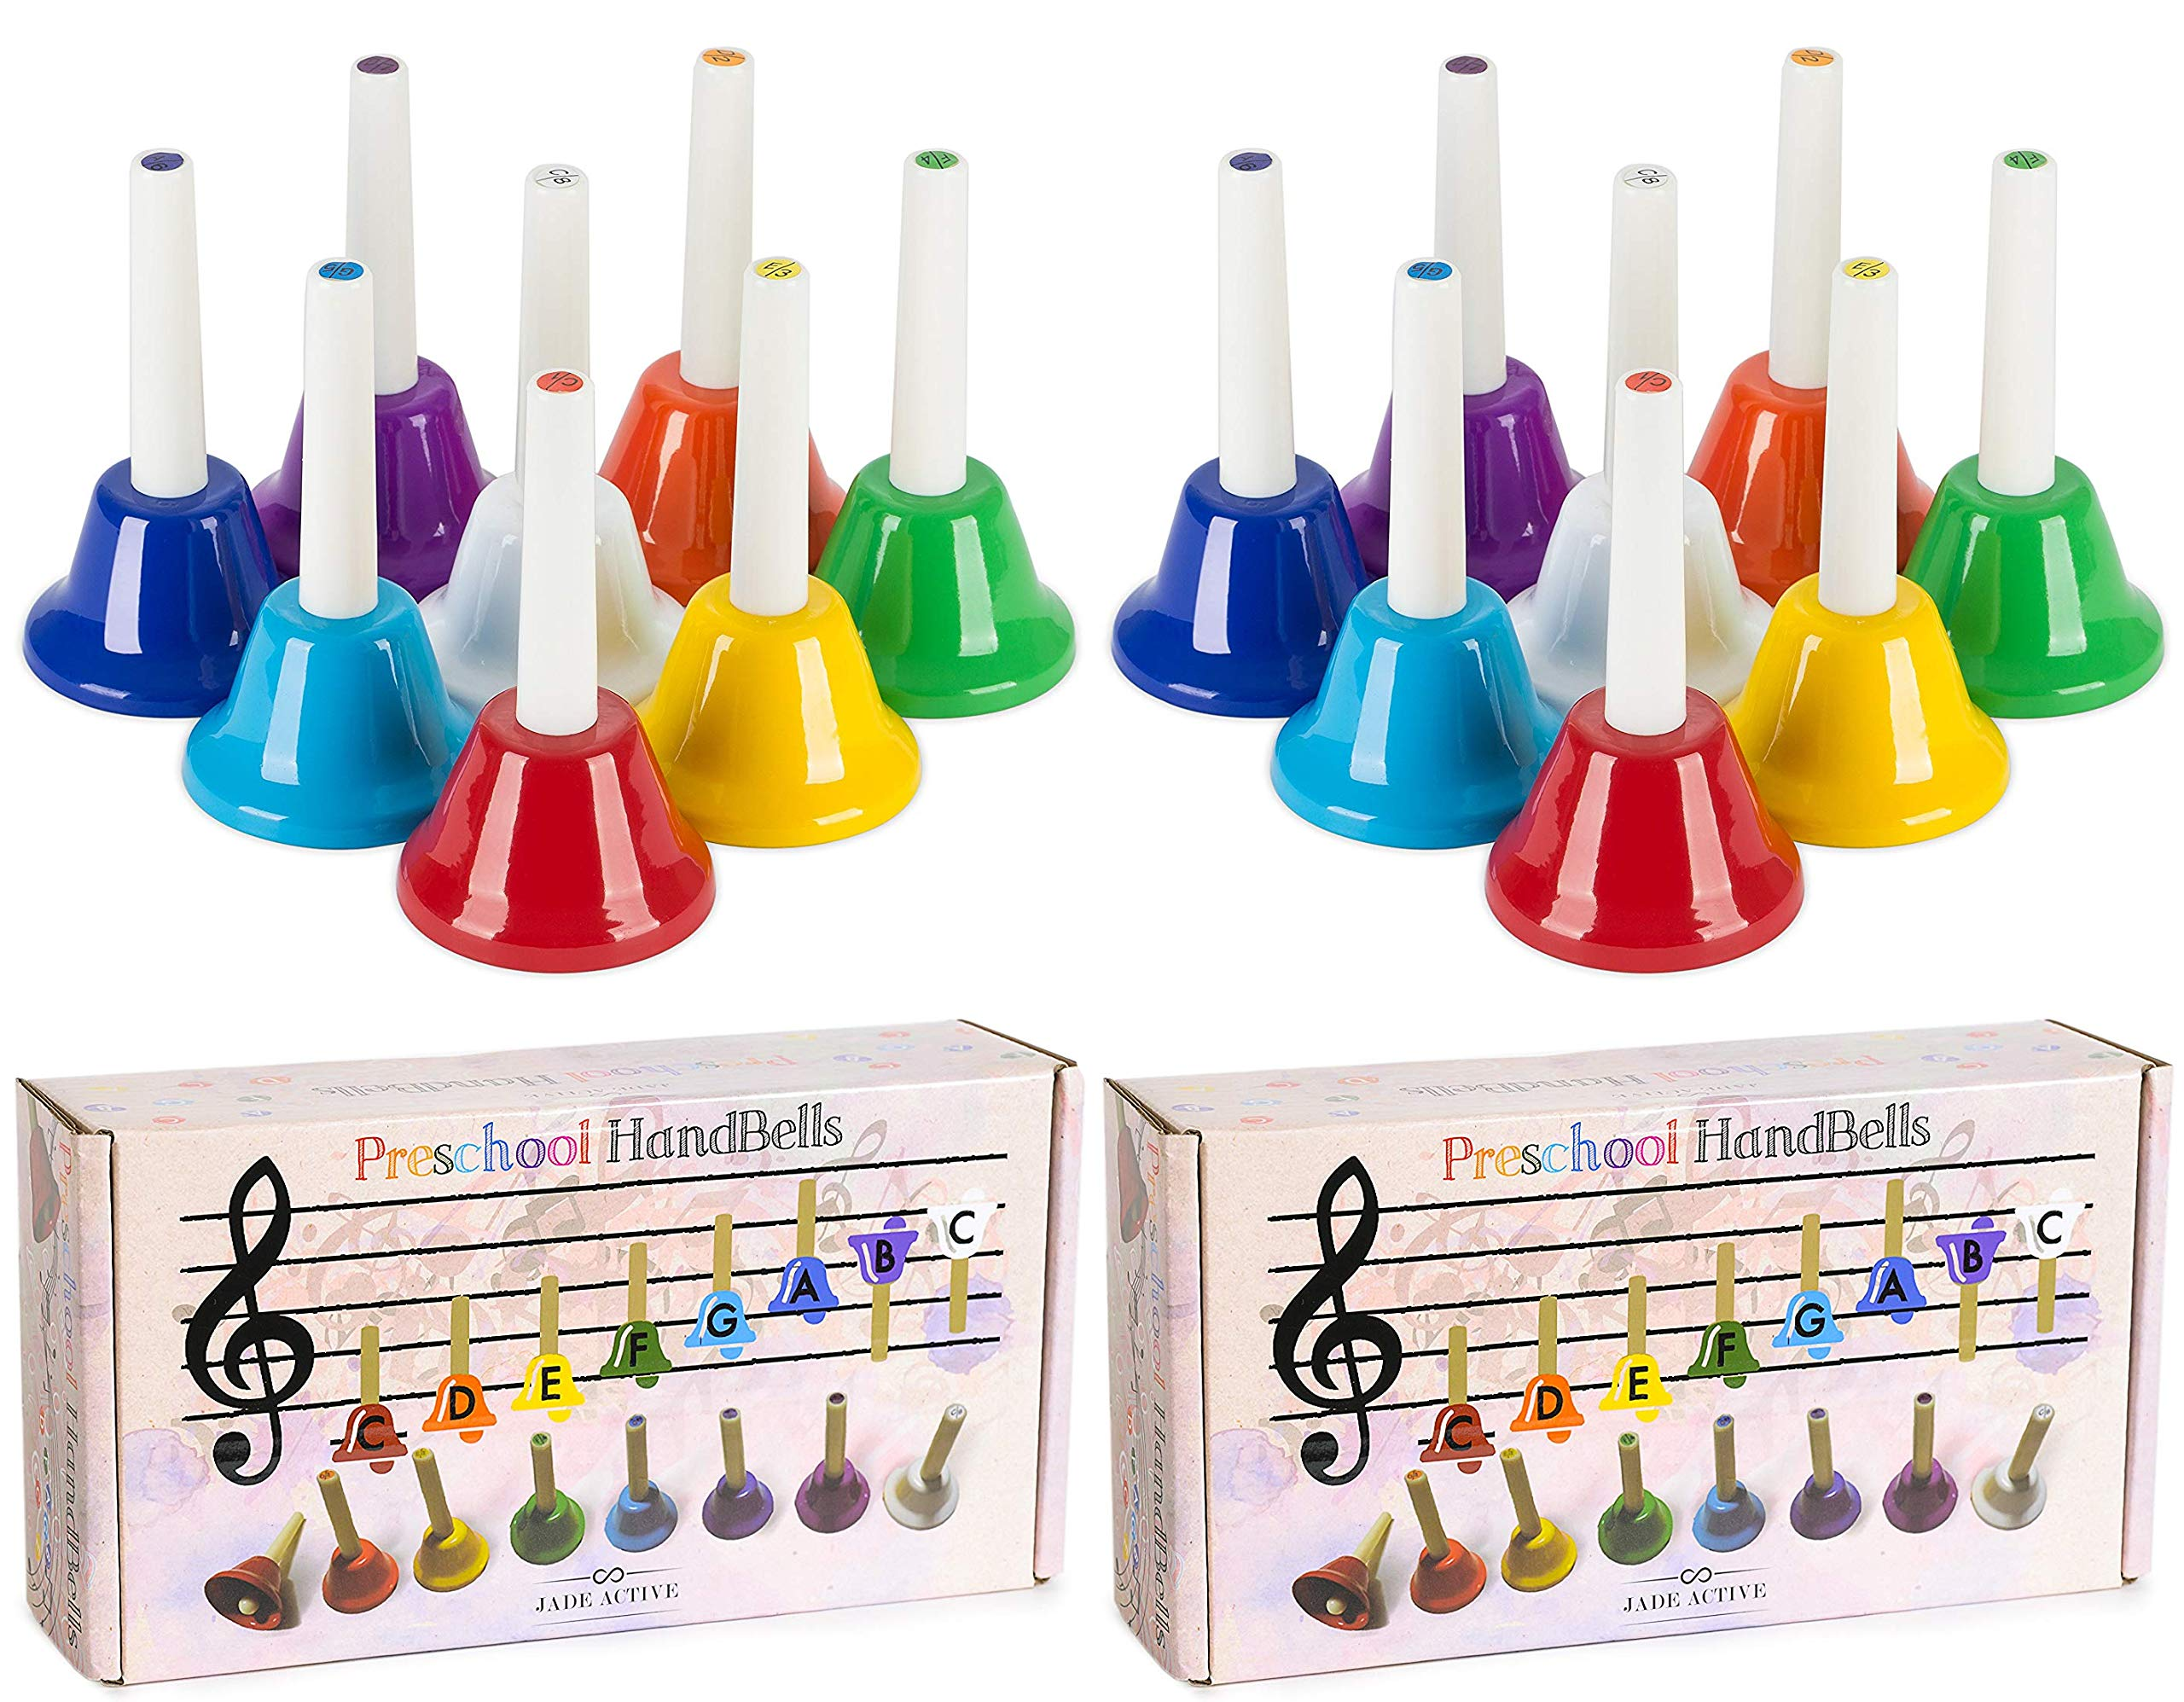 Jade Active 2 Pcs Handbell Set - Musical Bells for Children - Musical Learning at an Early Age